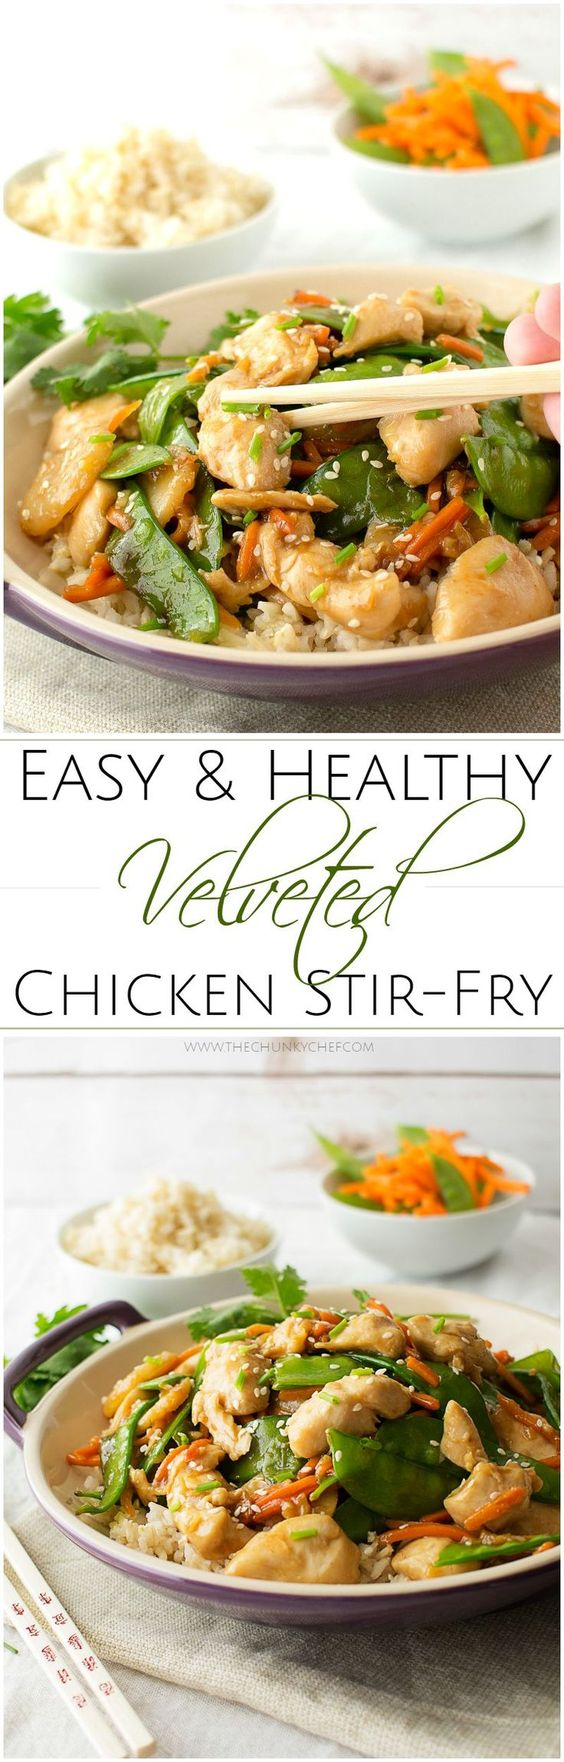 Healthy chicken stir fry, Chicken stir fry and Stir fry on Pinterest